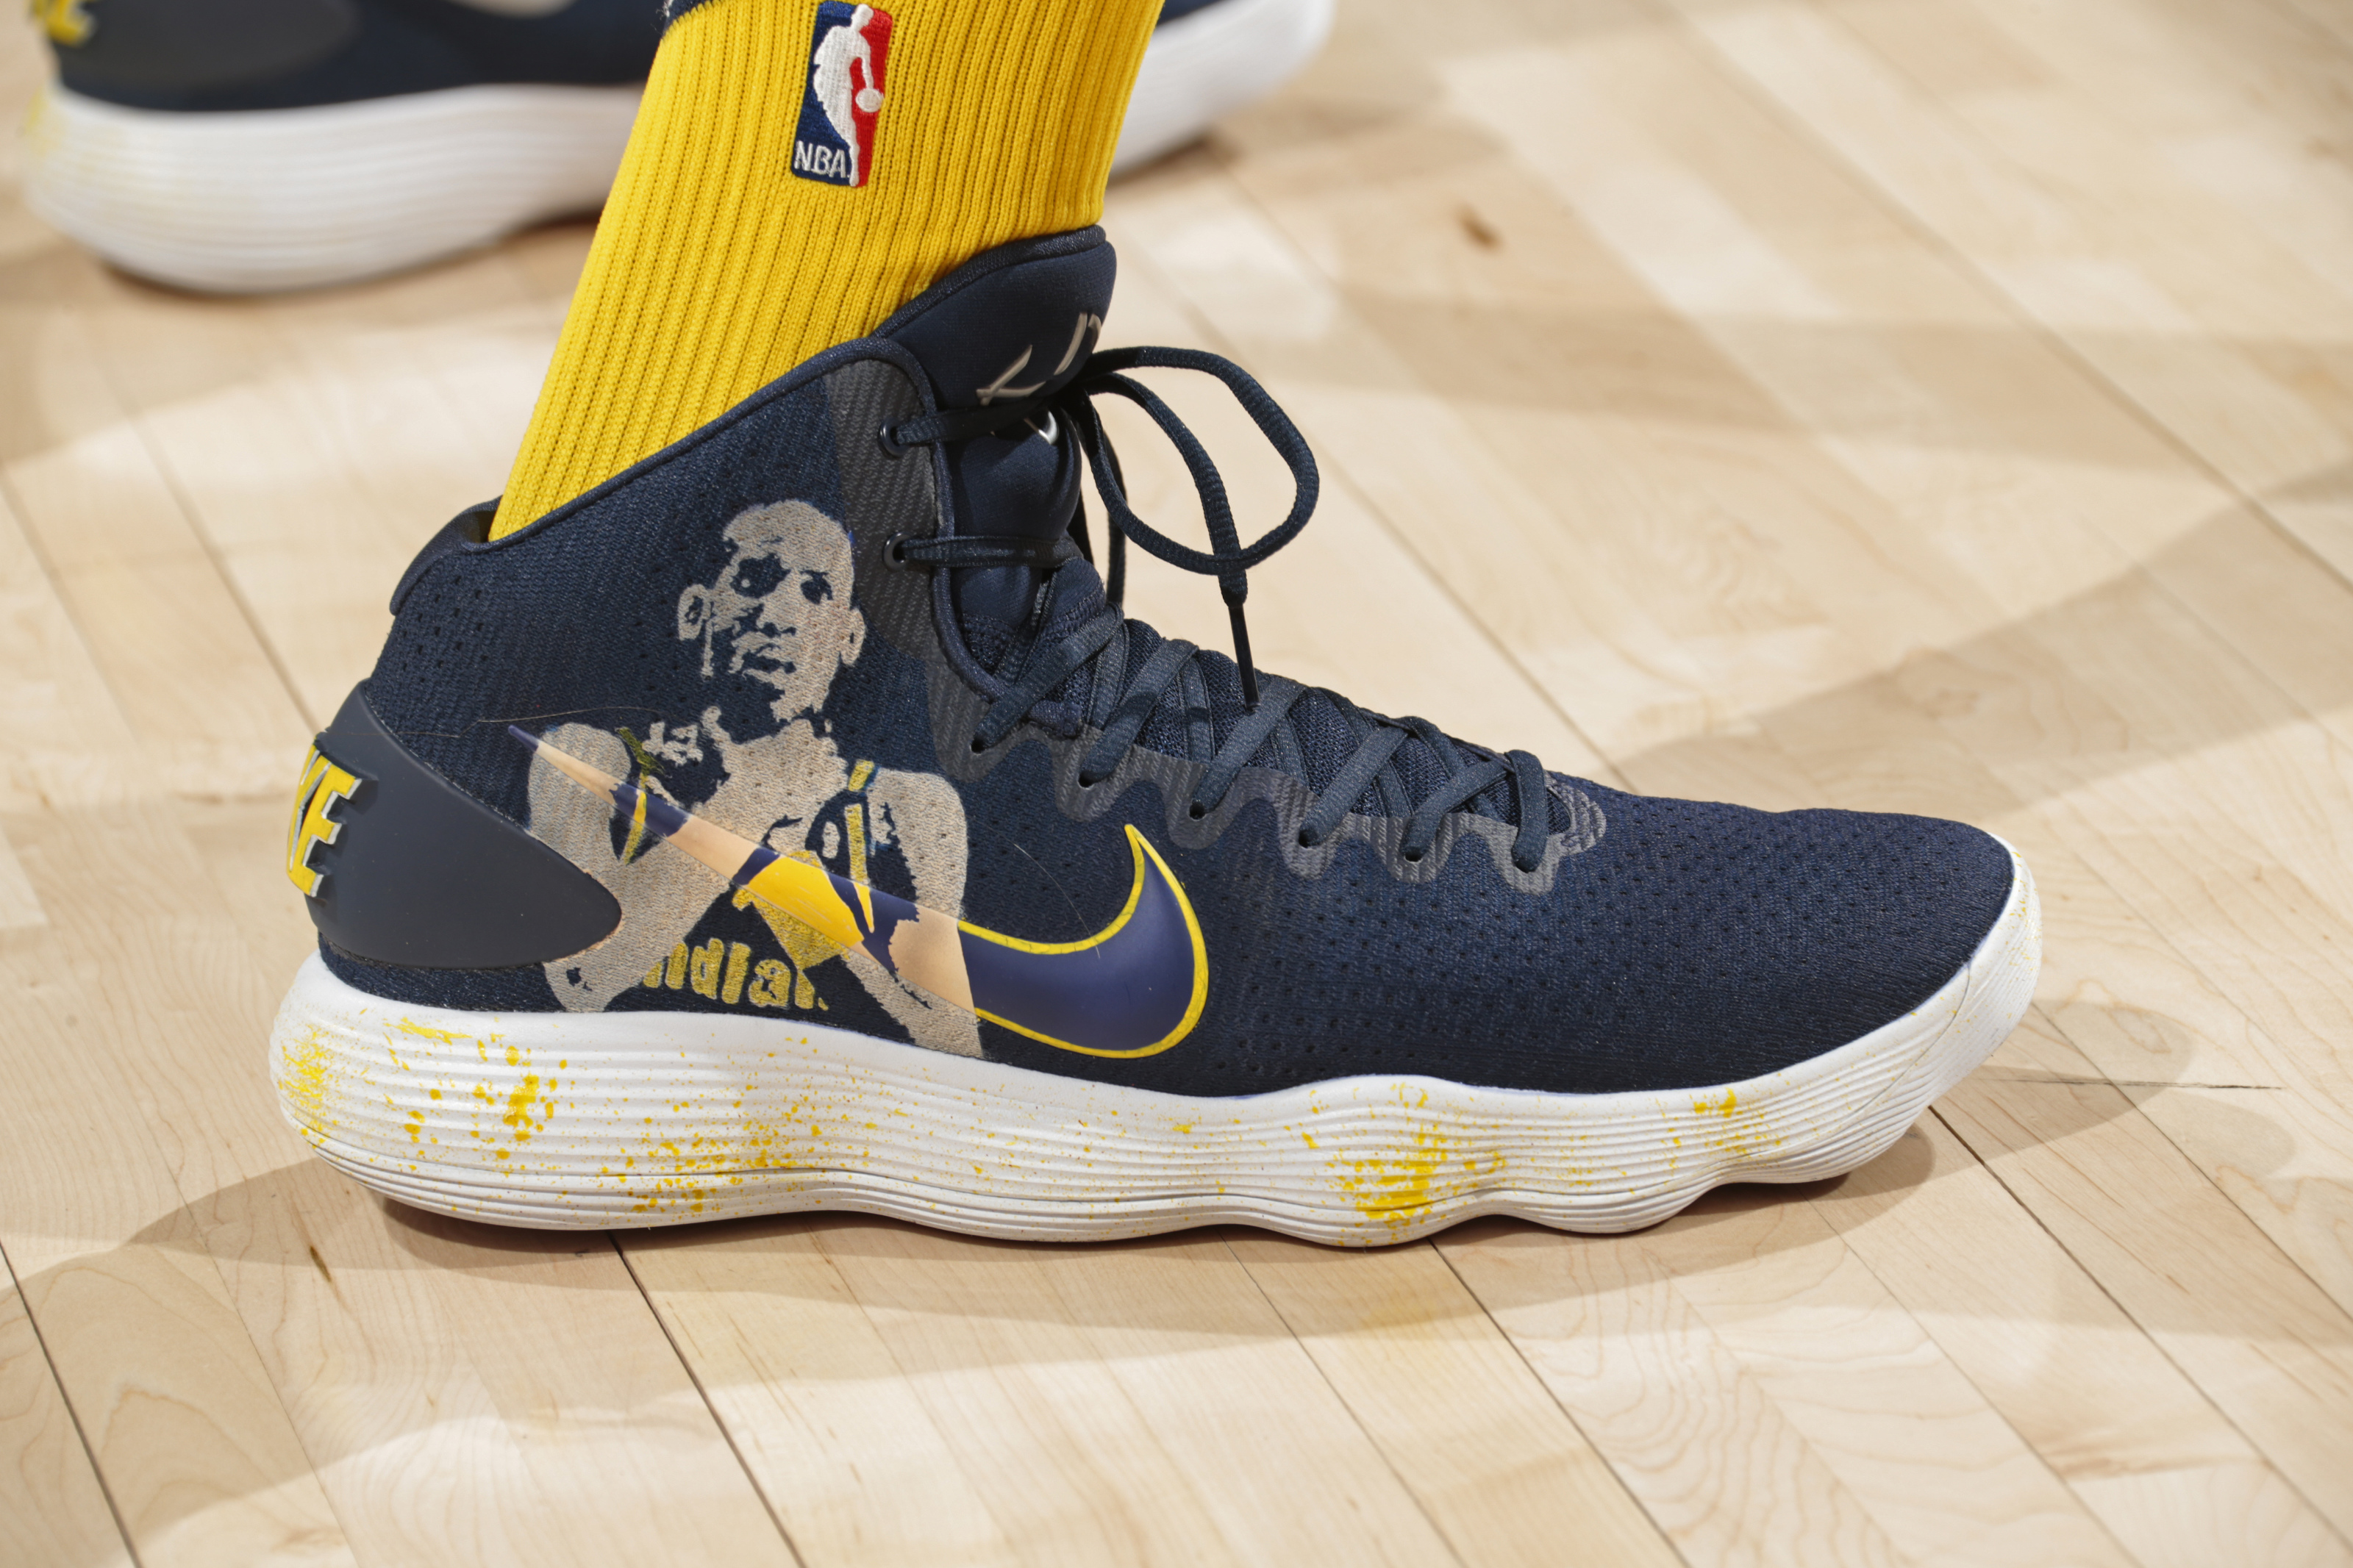 Shoe Styles on the Indiana Pacers